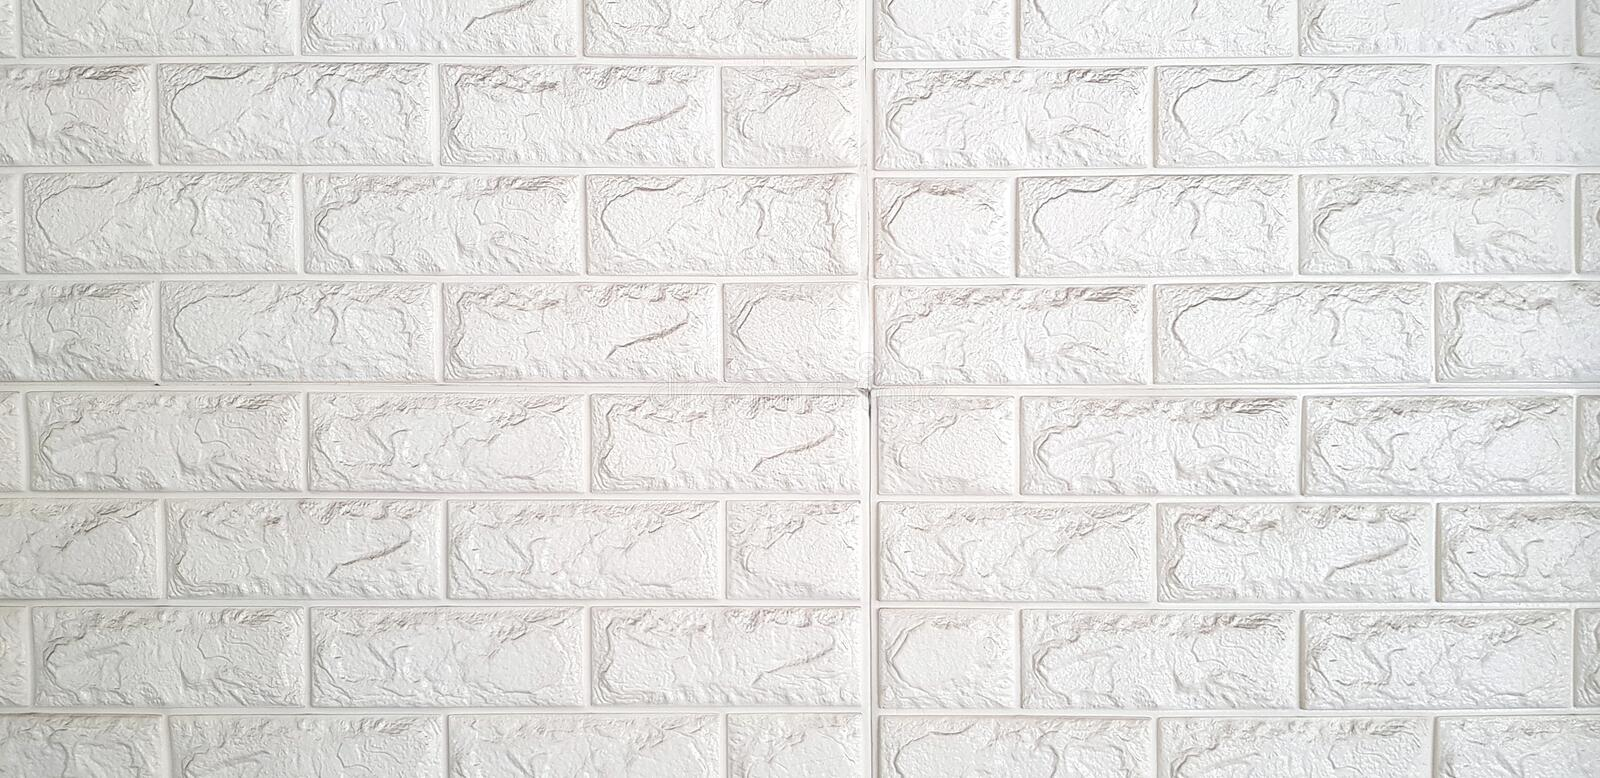 Line pattern of white ceramic wall for background or wallpaper.Design and Decoration structure royalty free stock photos